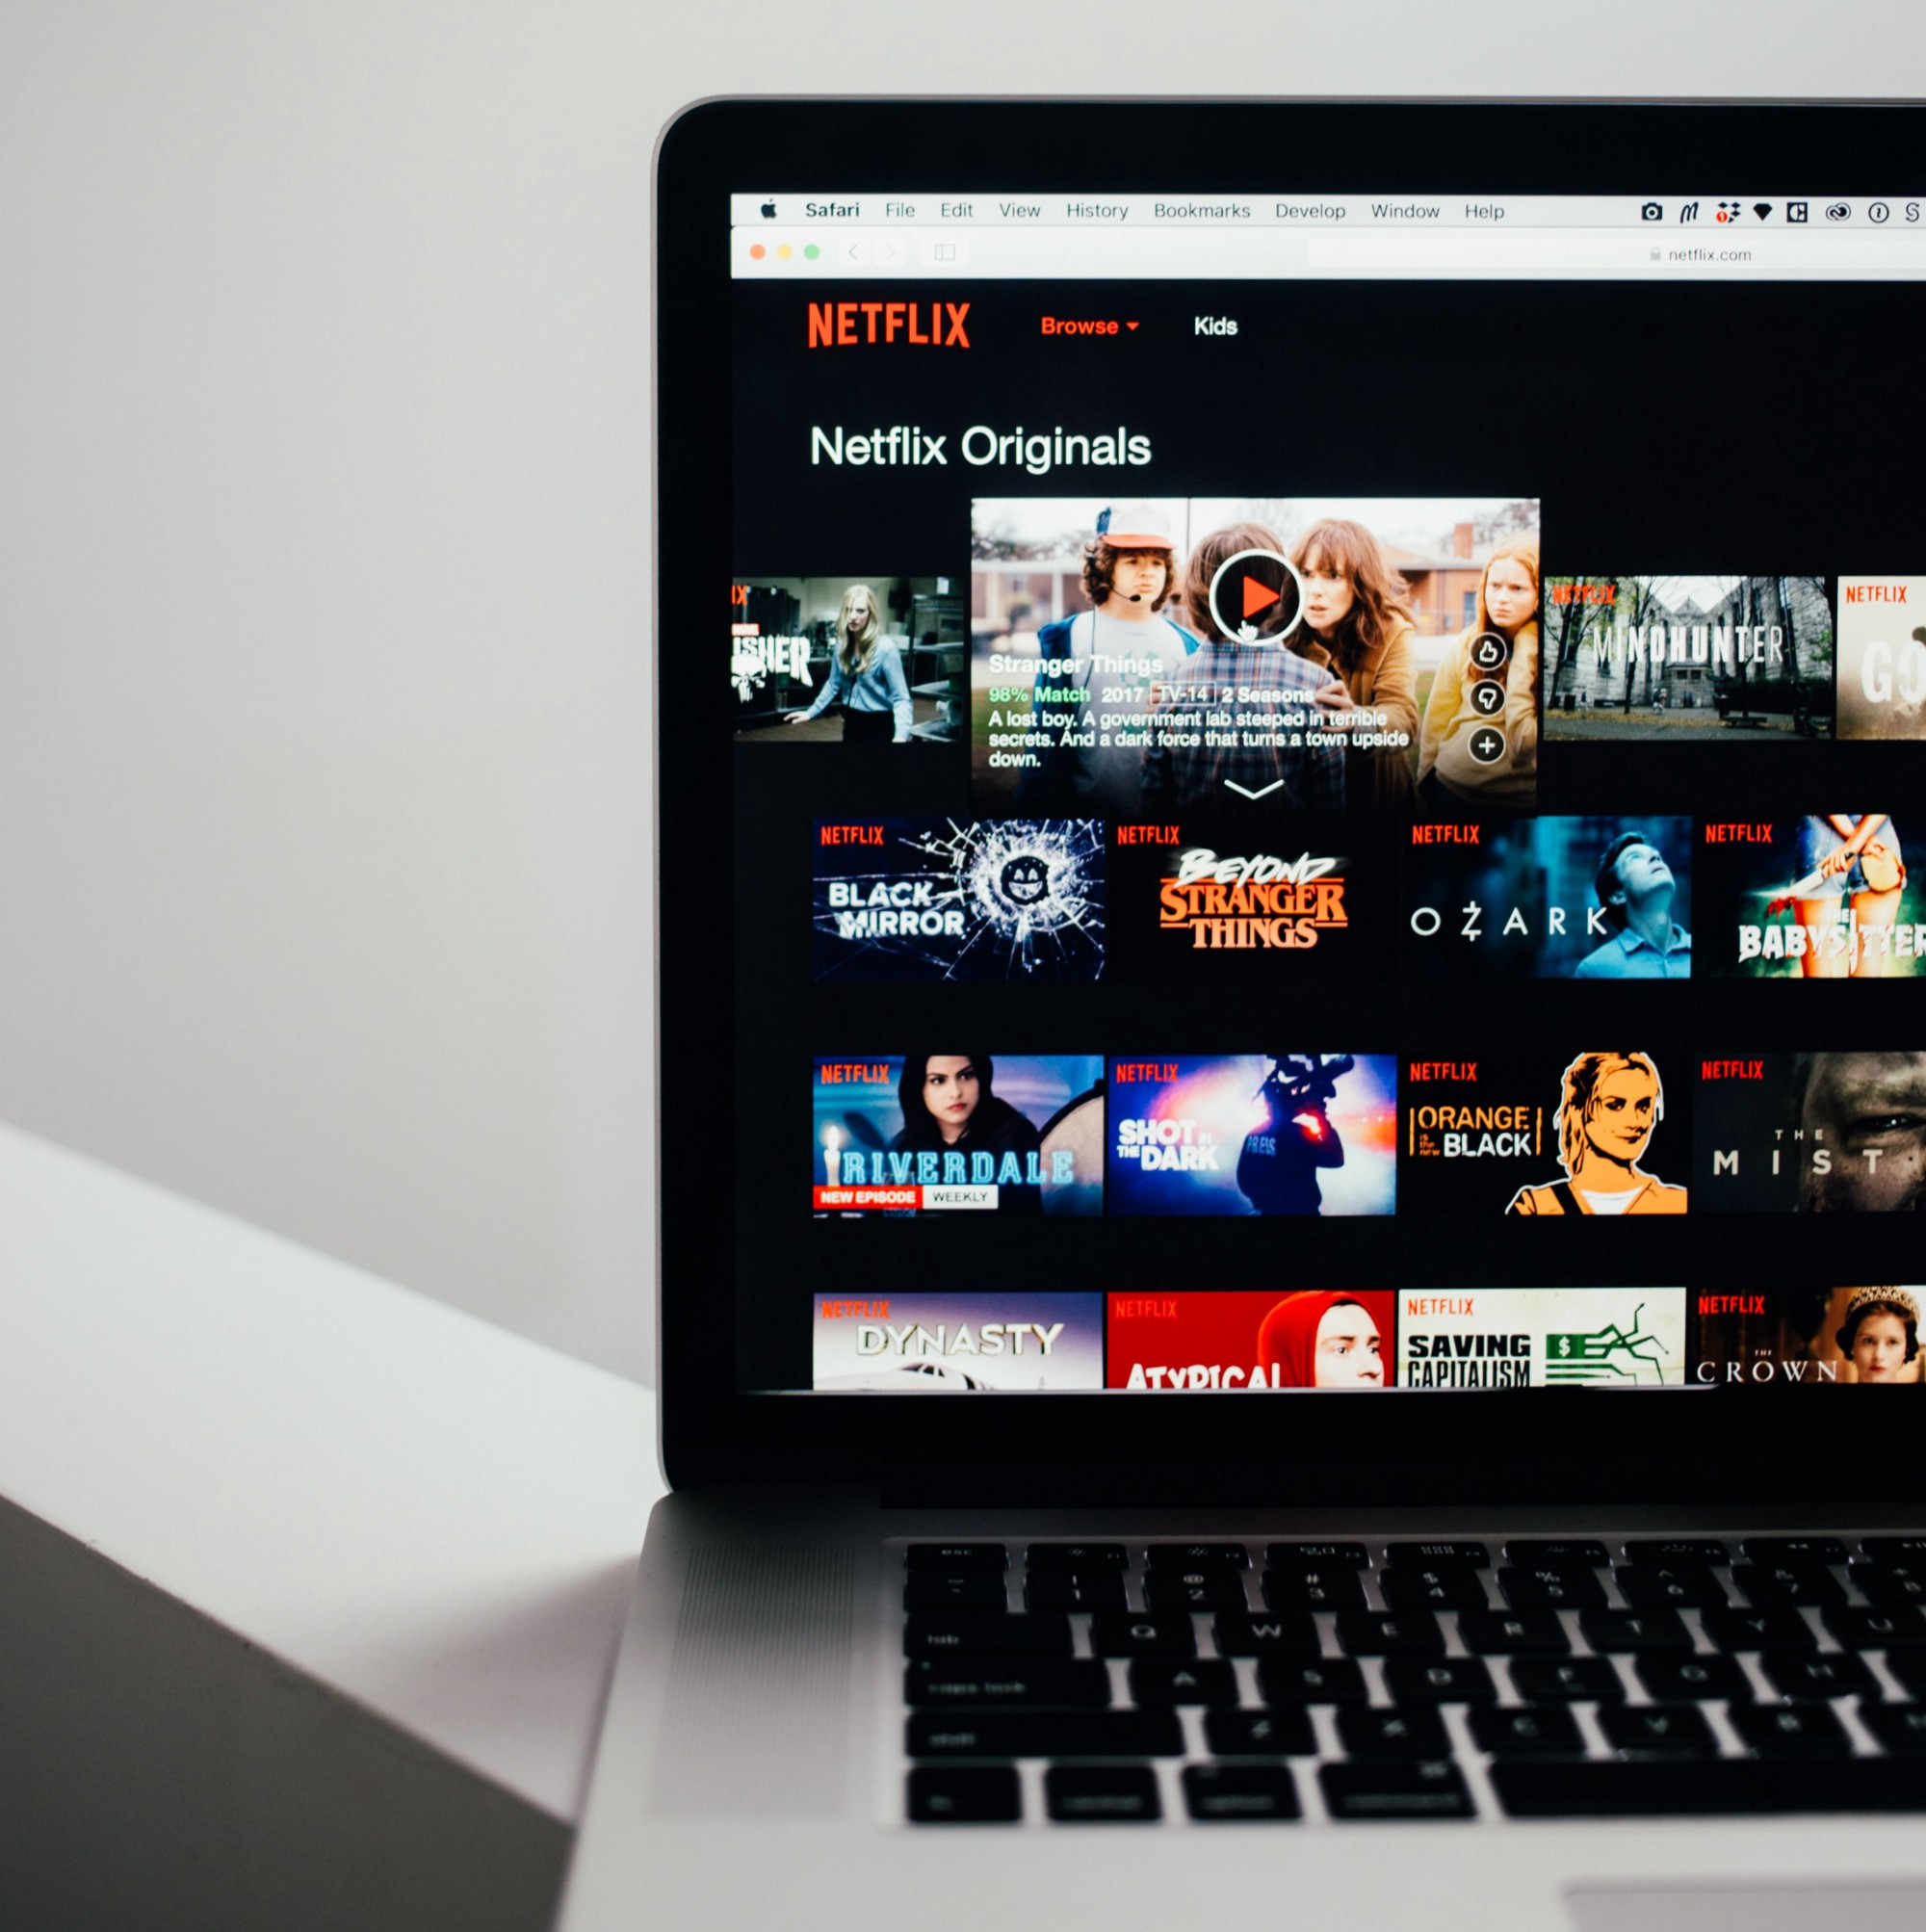 Netflix web is opened on laptop browser.